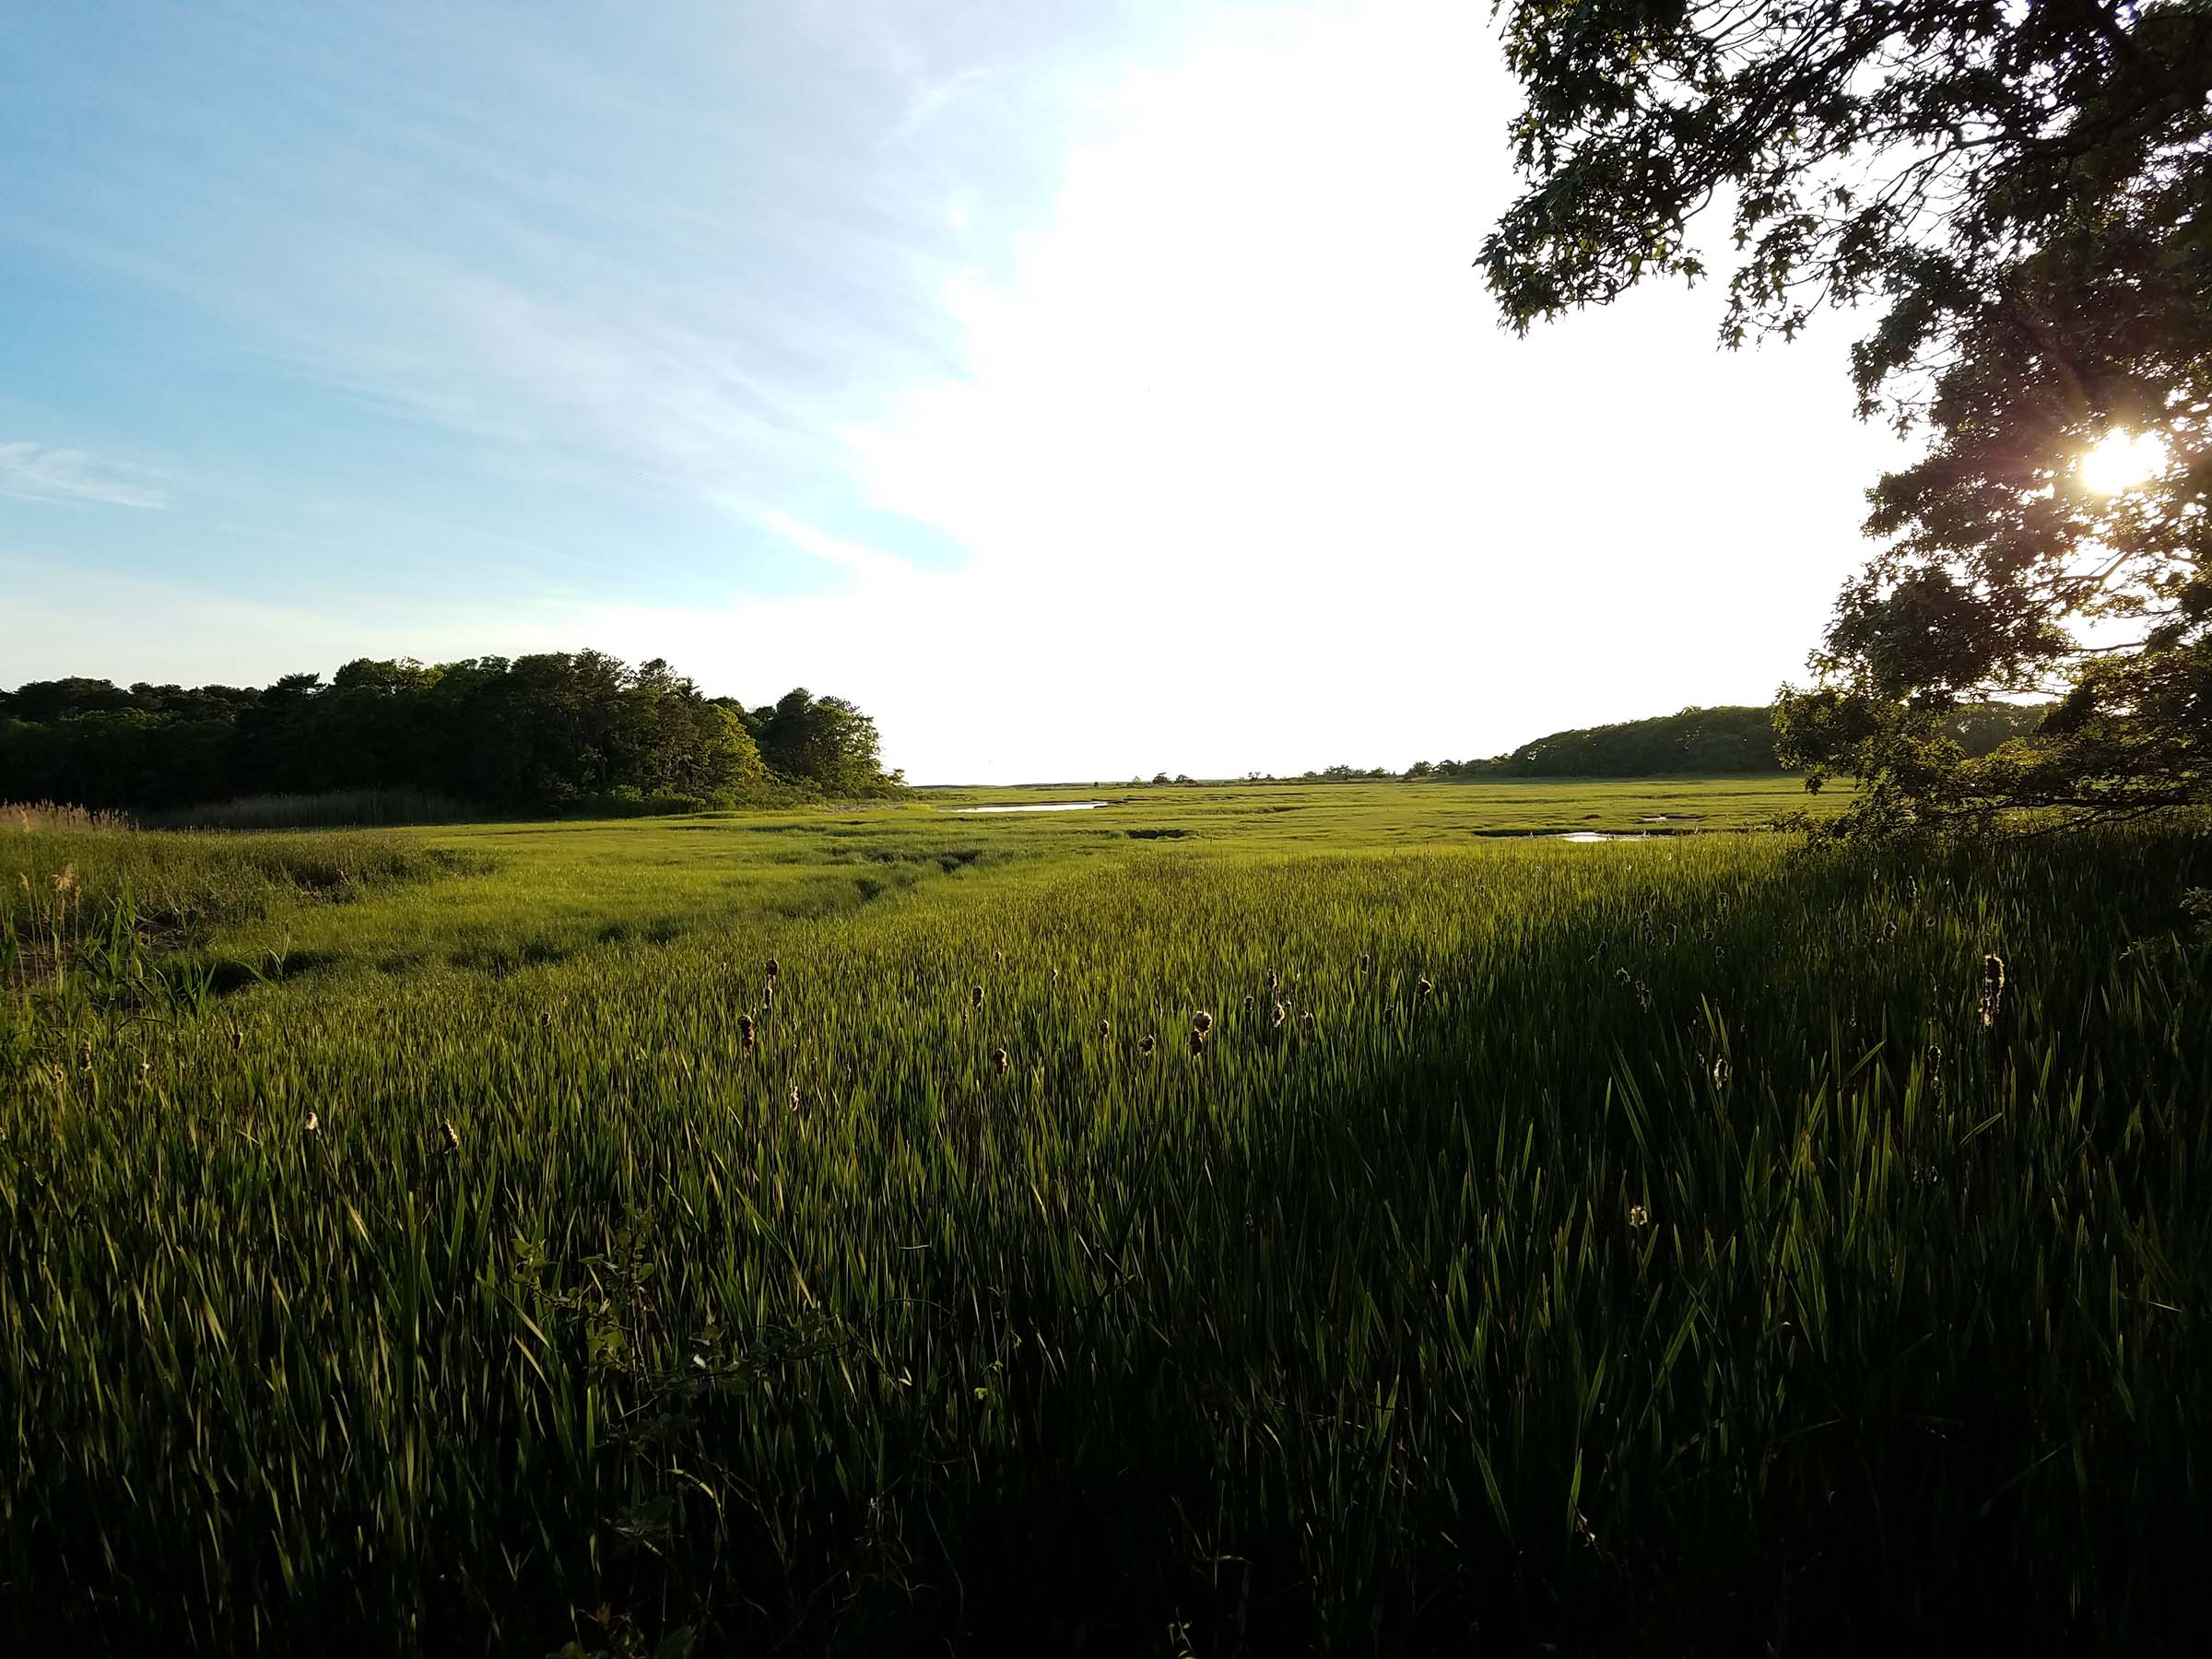 A photo of marshy grassland in the late afternoon, with the sun low in the sky. Some wooded areas are in the distance, and some tall trees are near the camera, but the landscape is otherwise just tall green grass and water.